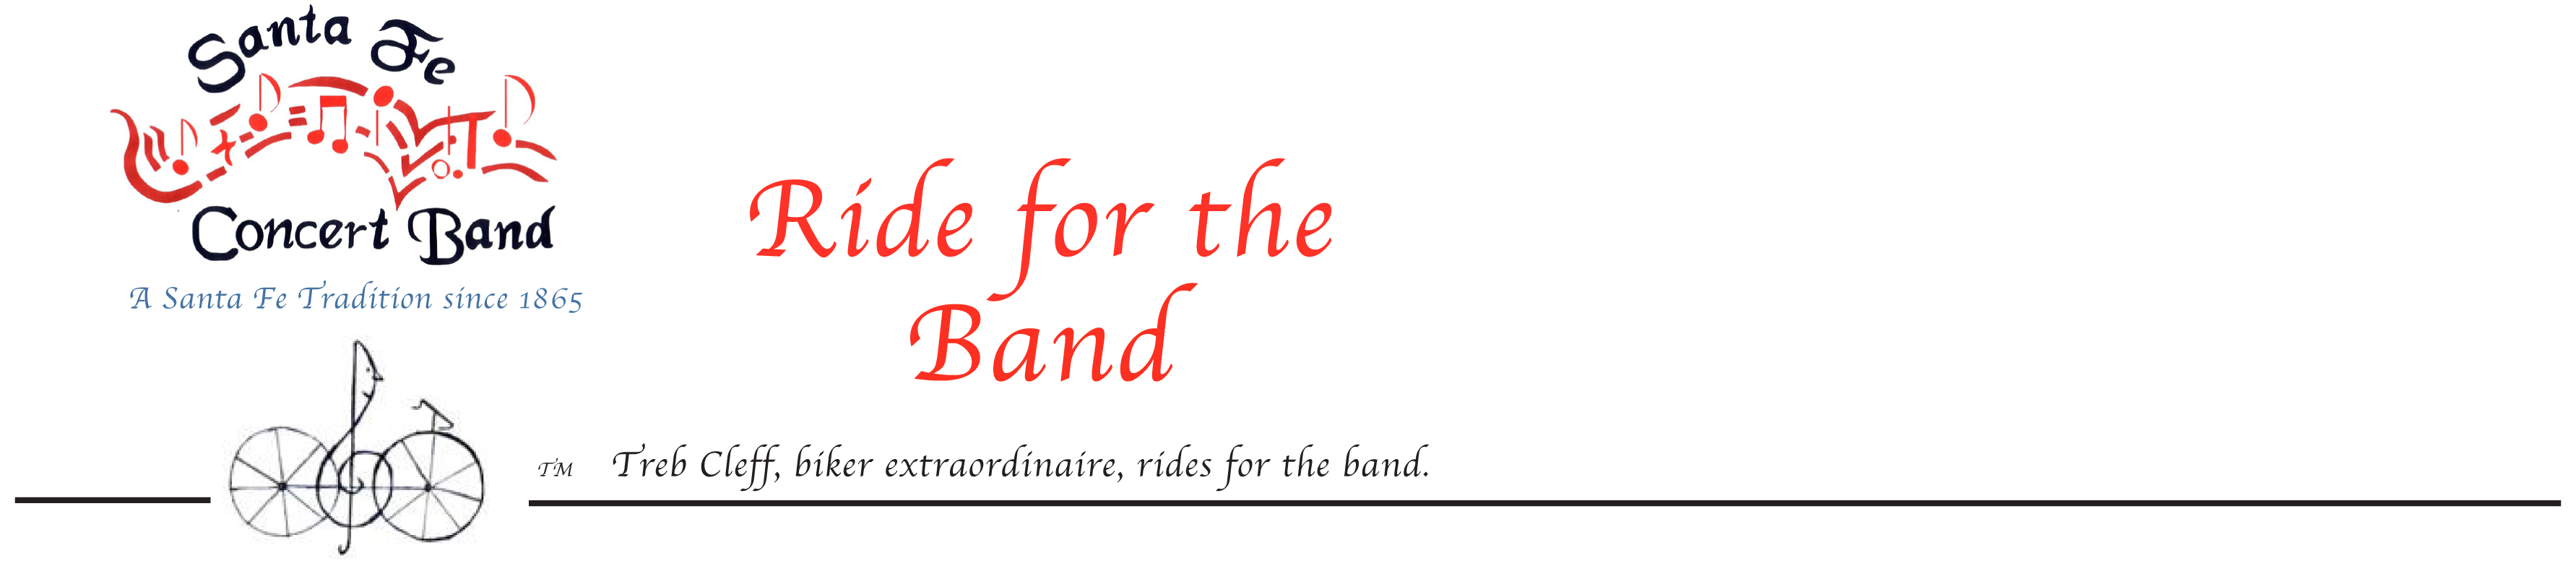 Ride for the Band